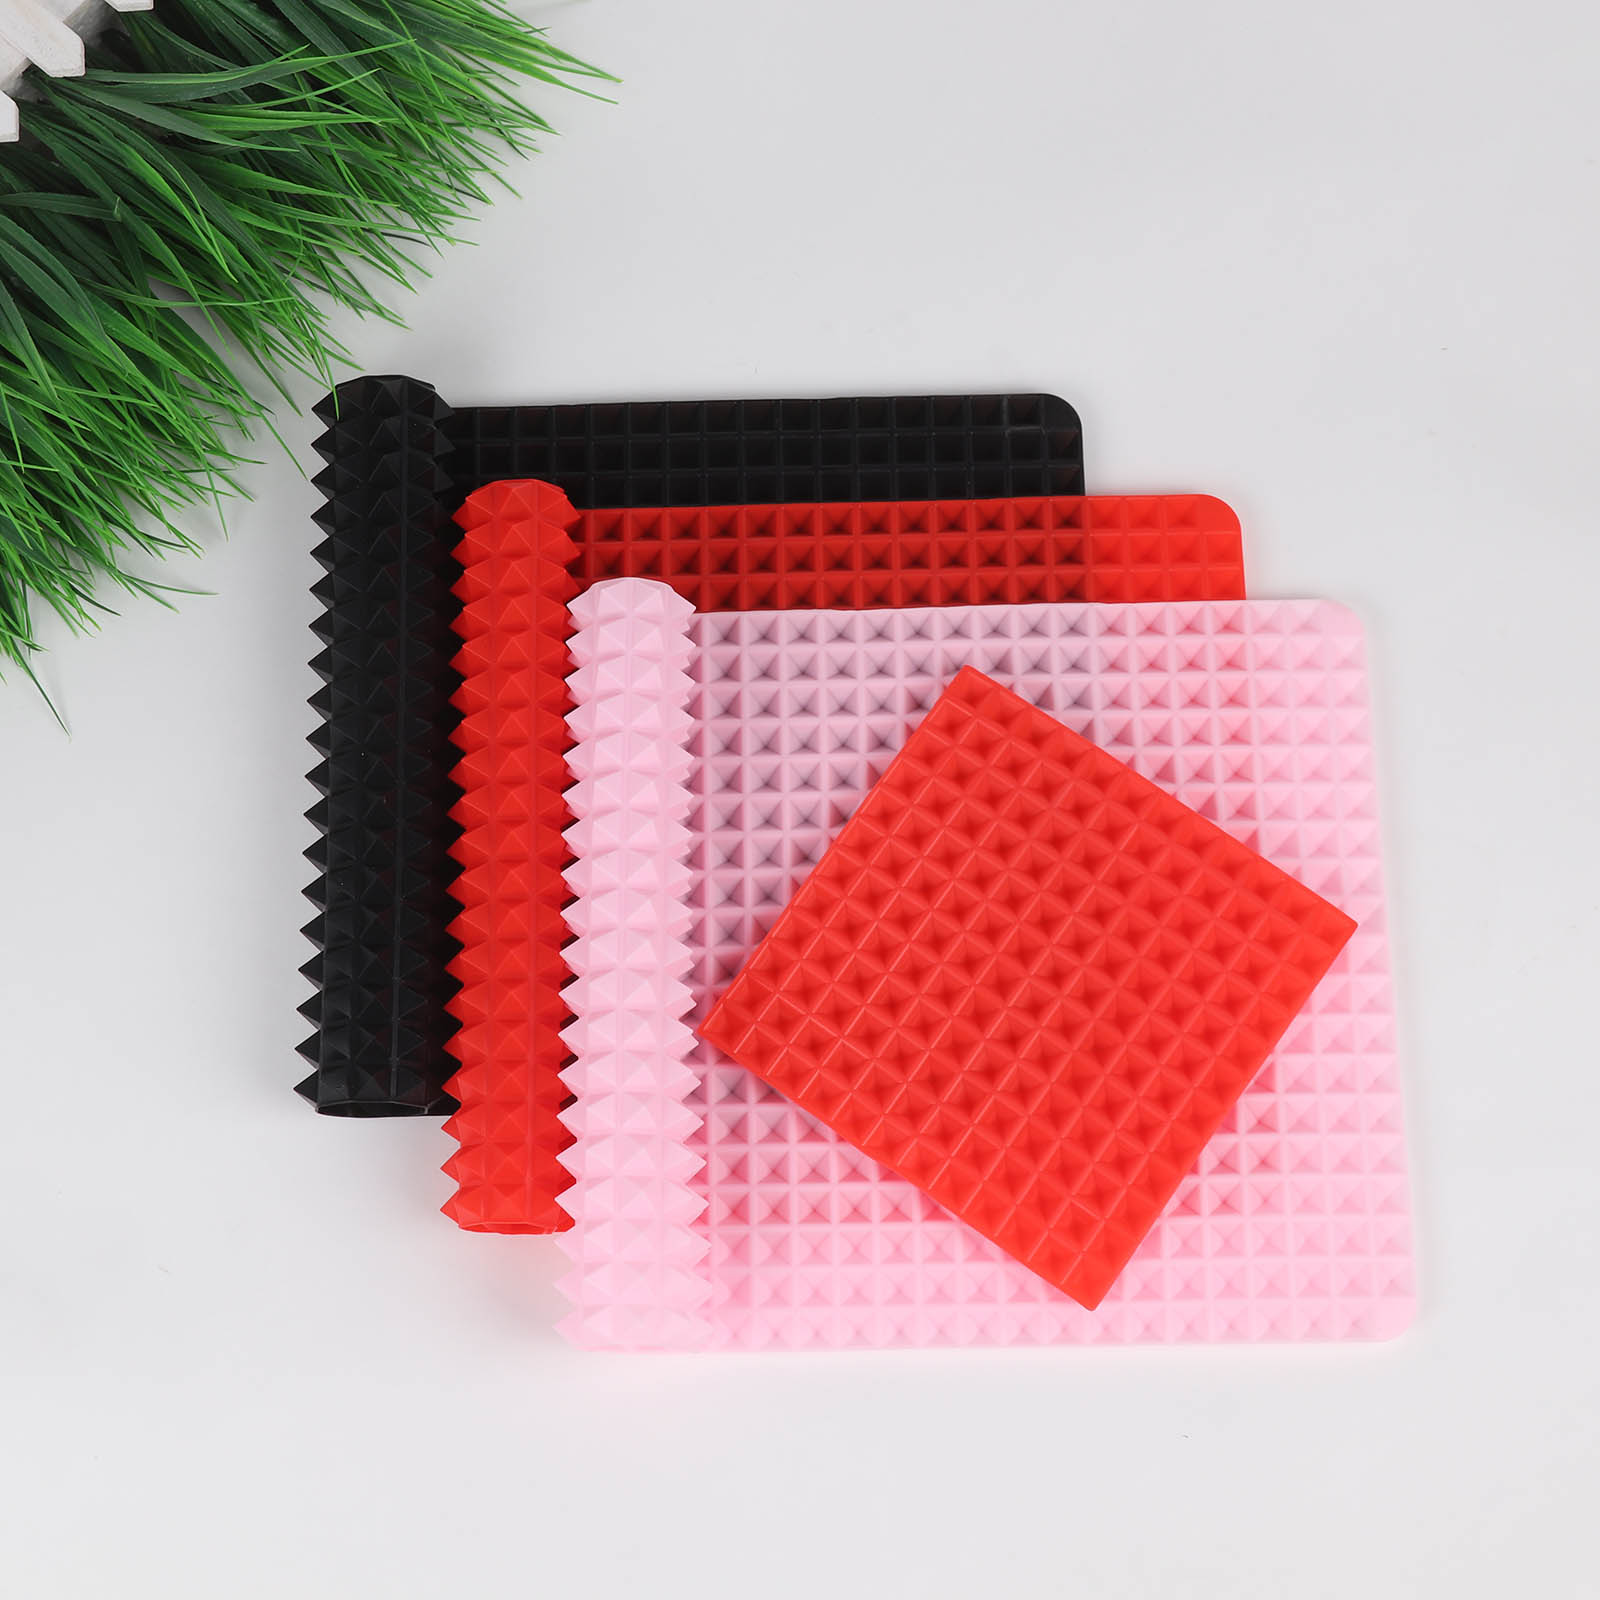 3 Colors Silicone Baking Mat In Non Toxic And High Temperature Resistance For Chocolate And Jelly Pudding 6